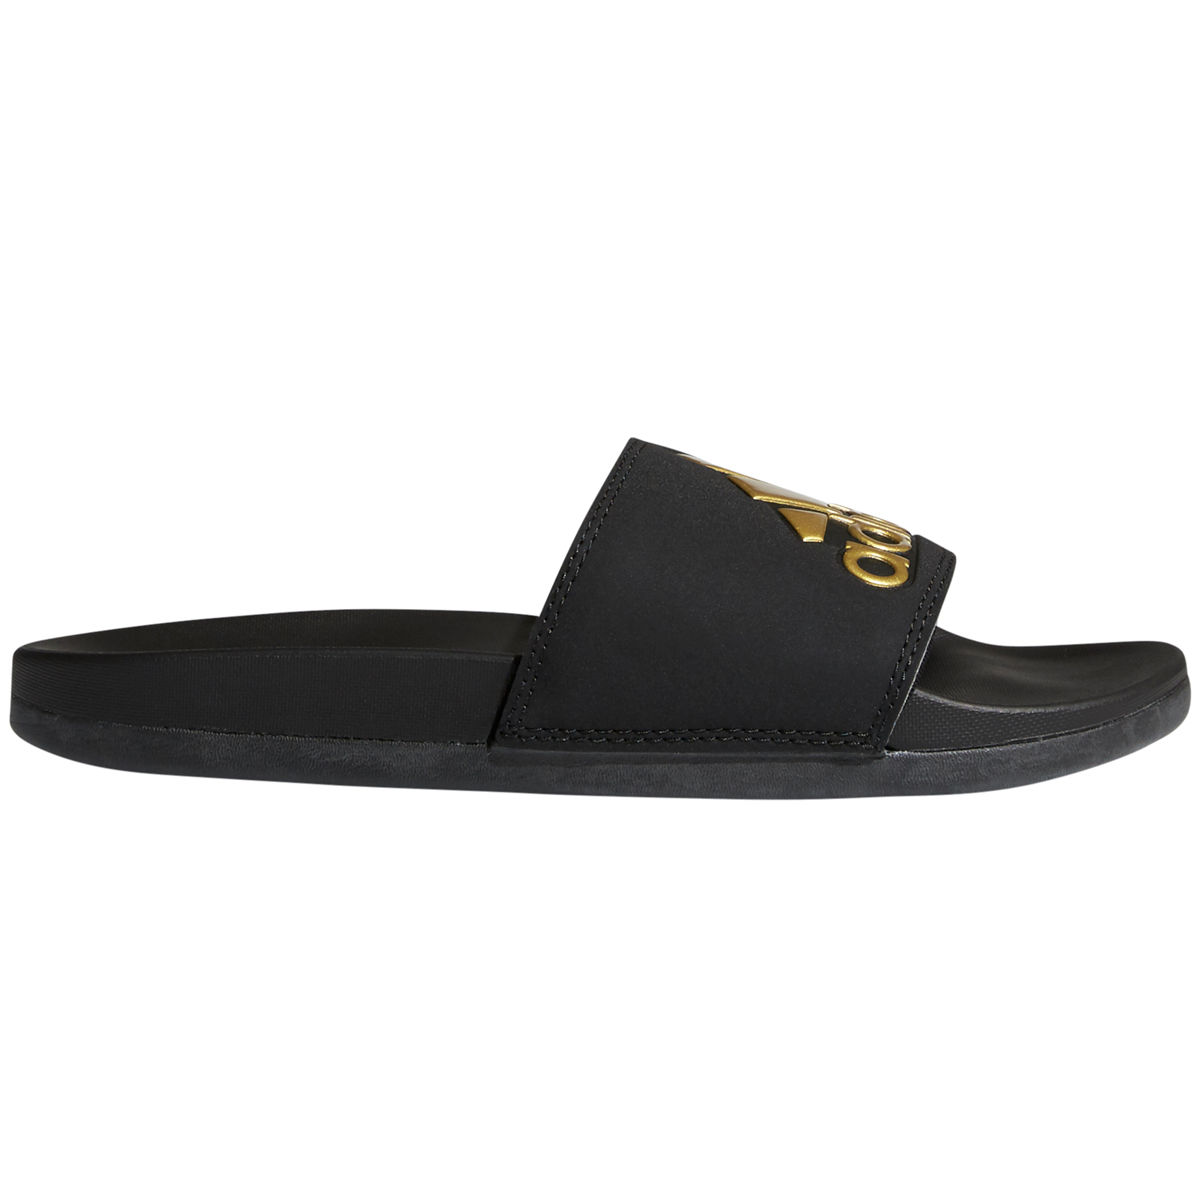 adidas Adilette CloudFoam Plus Womens Slide